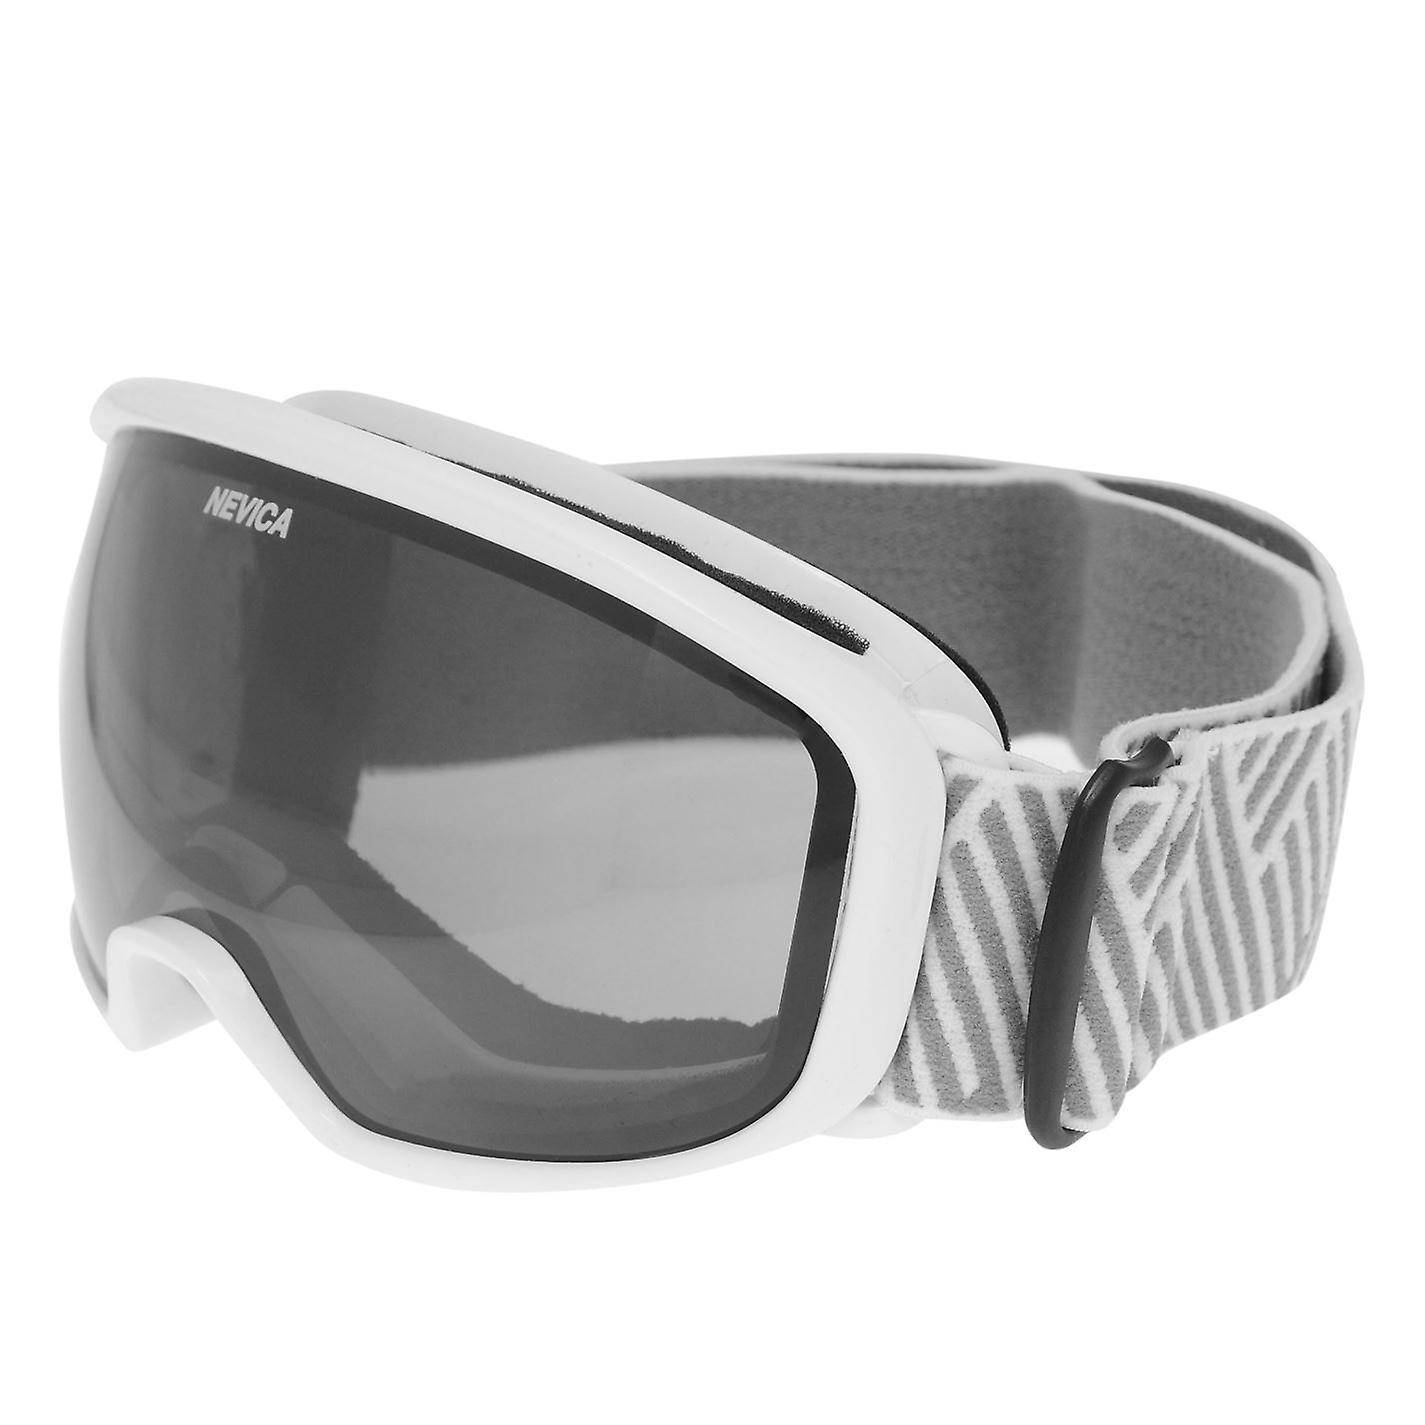 Nevica Femmes Arctic Ski Goggles Dames UVB Protection Sports d'hiver Blanc One Size